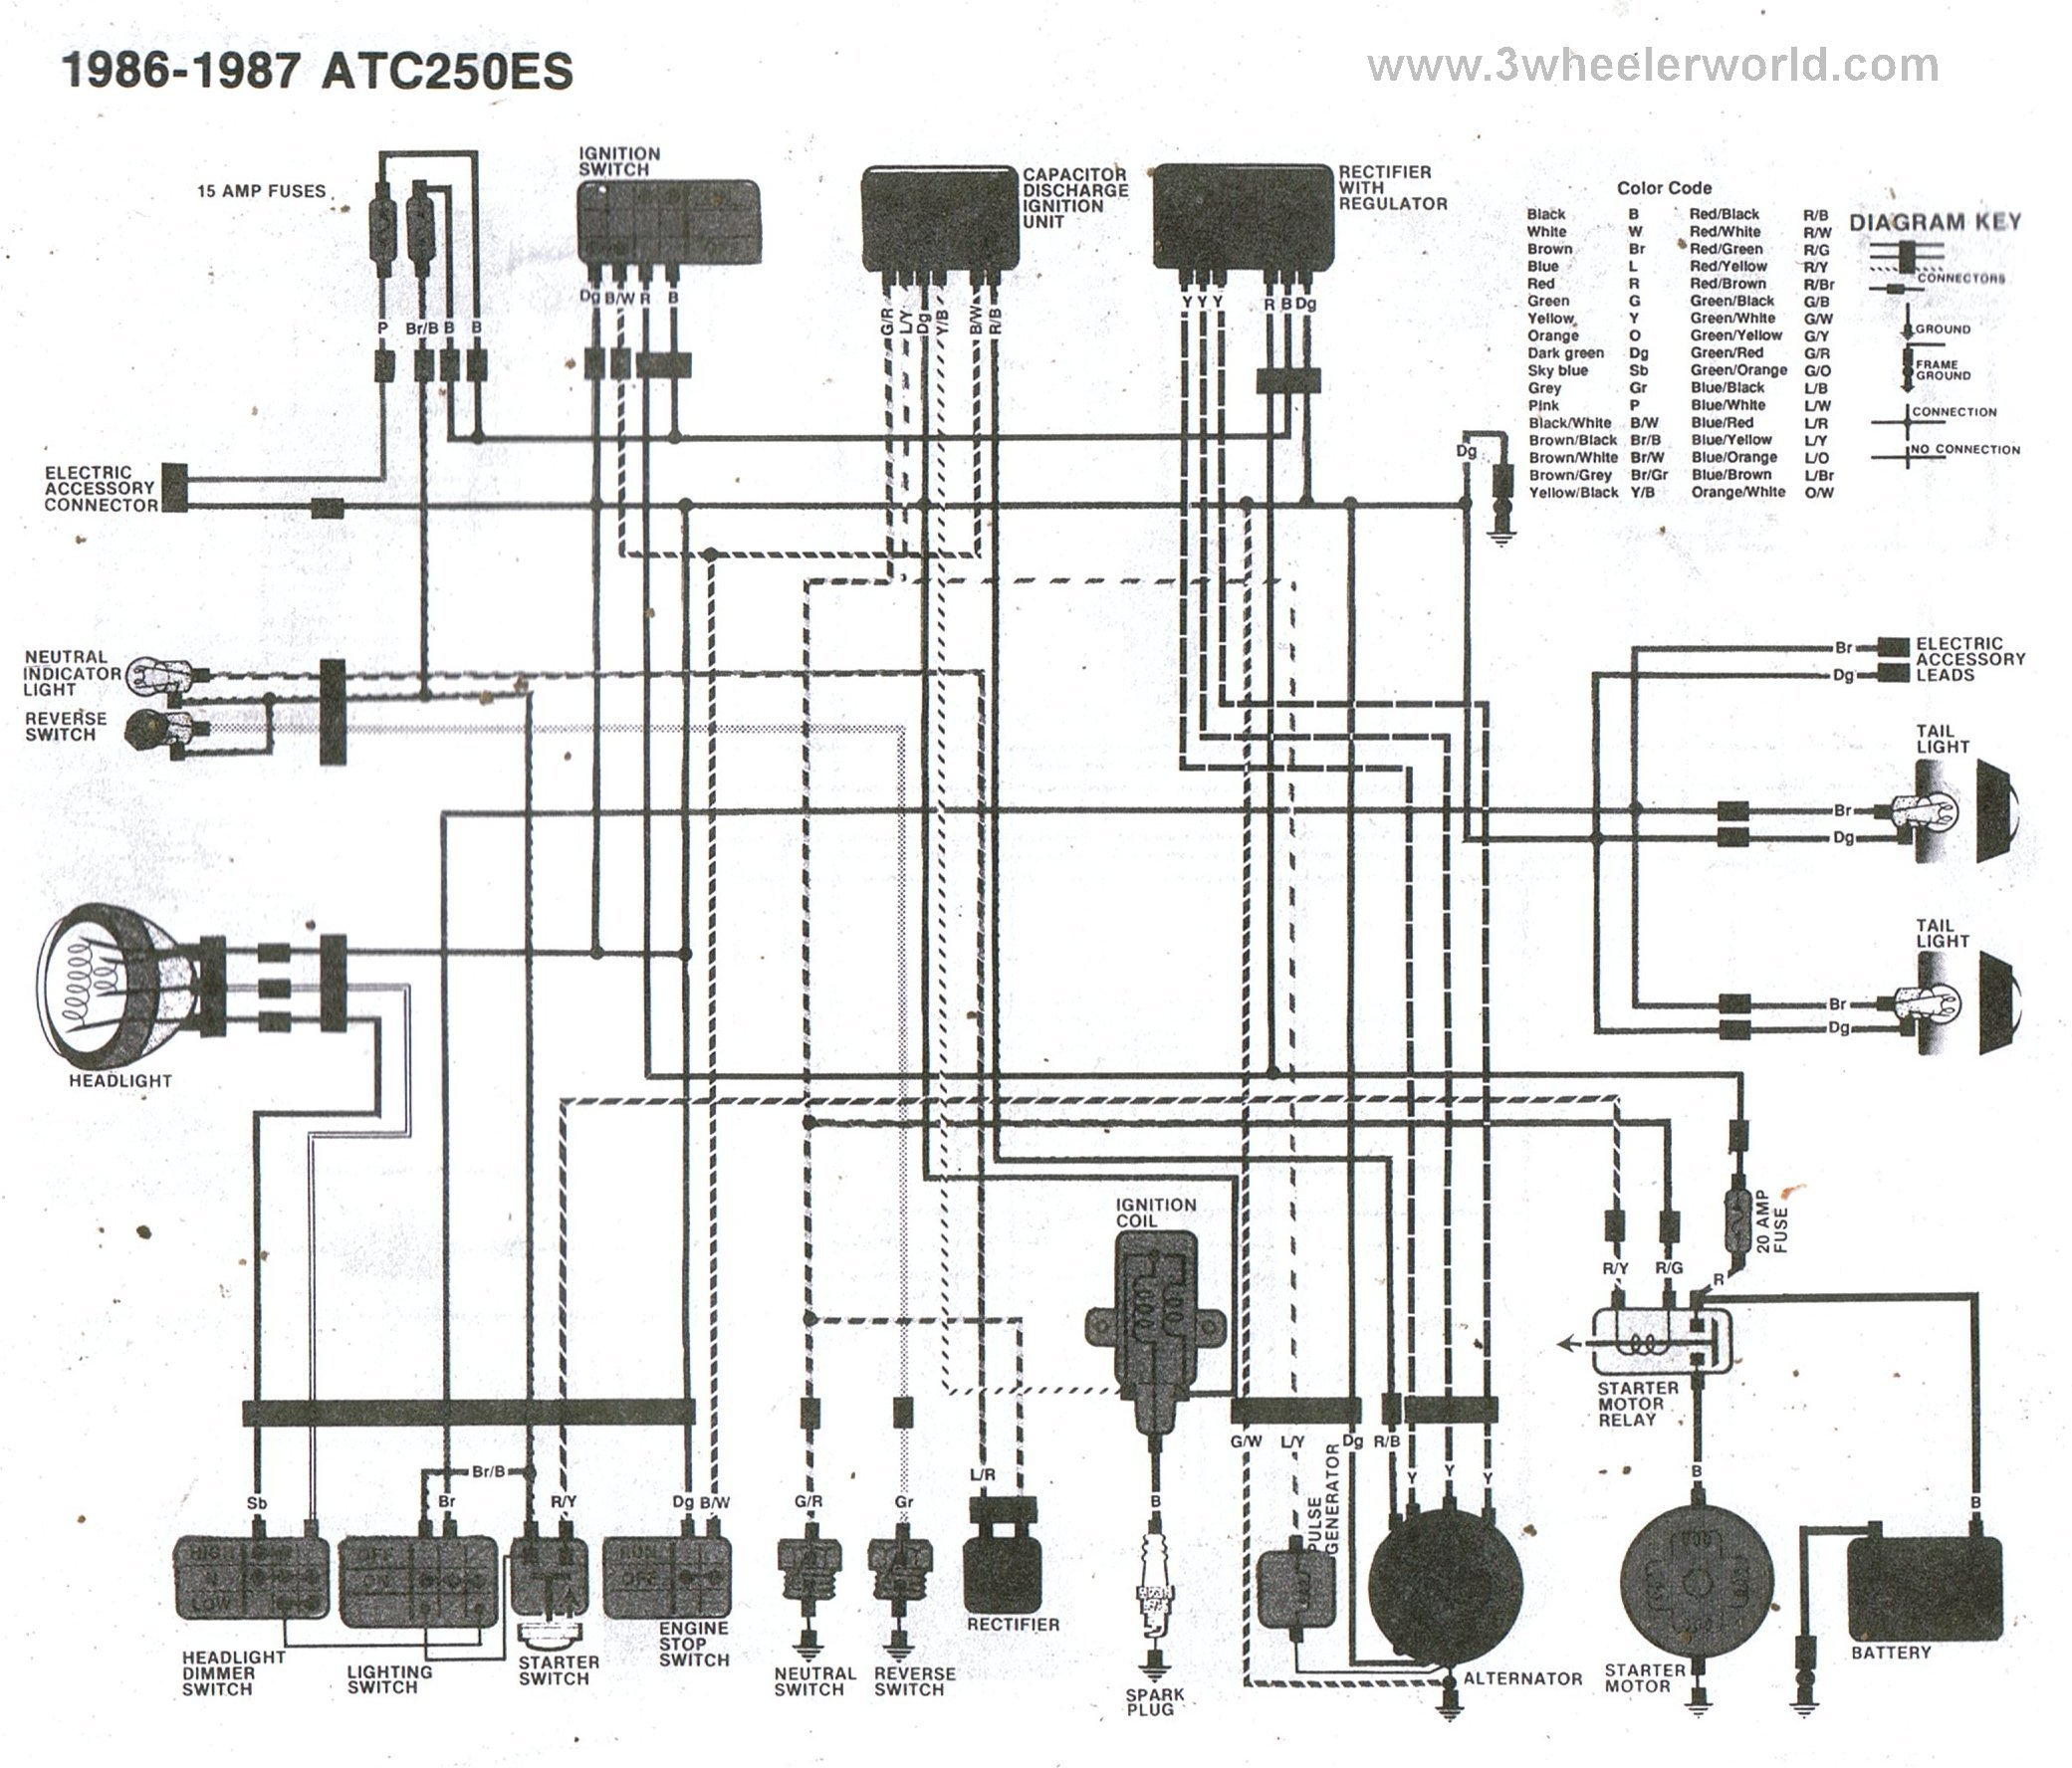 ATC250ESx86Thru87 3 wheeler world tech help honda wiring diagrams honda trx 350 wiring diagram at aneh.co